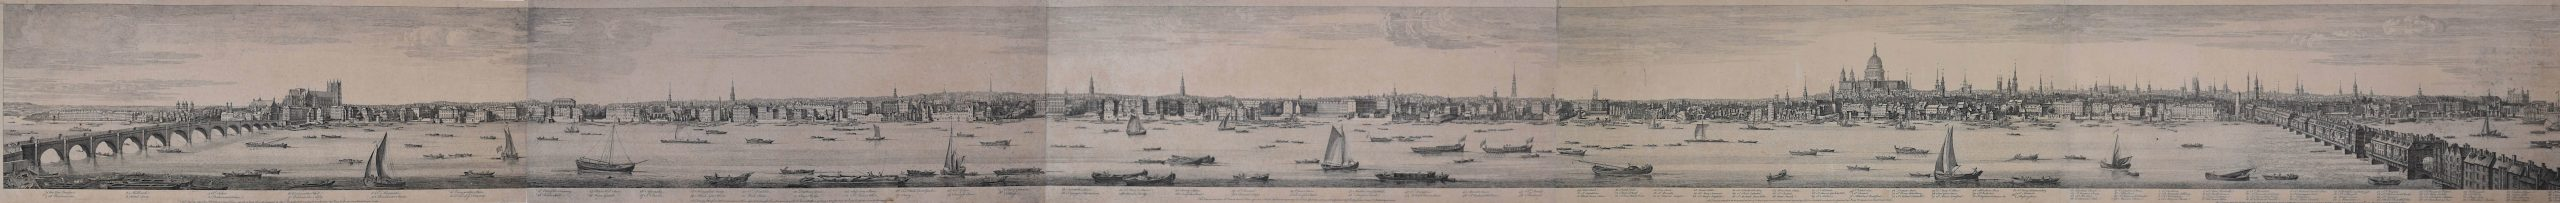 Samuel & Nathaniel Buck panorama of London from the Thames 1749 for sale